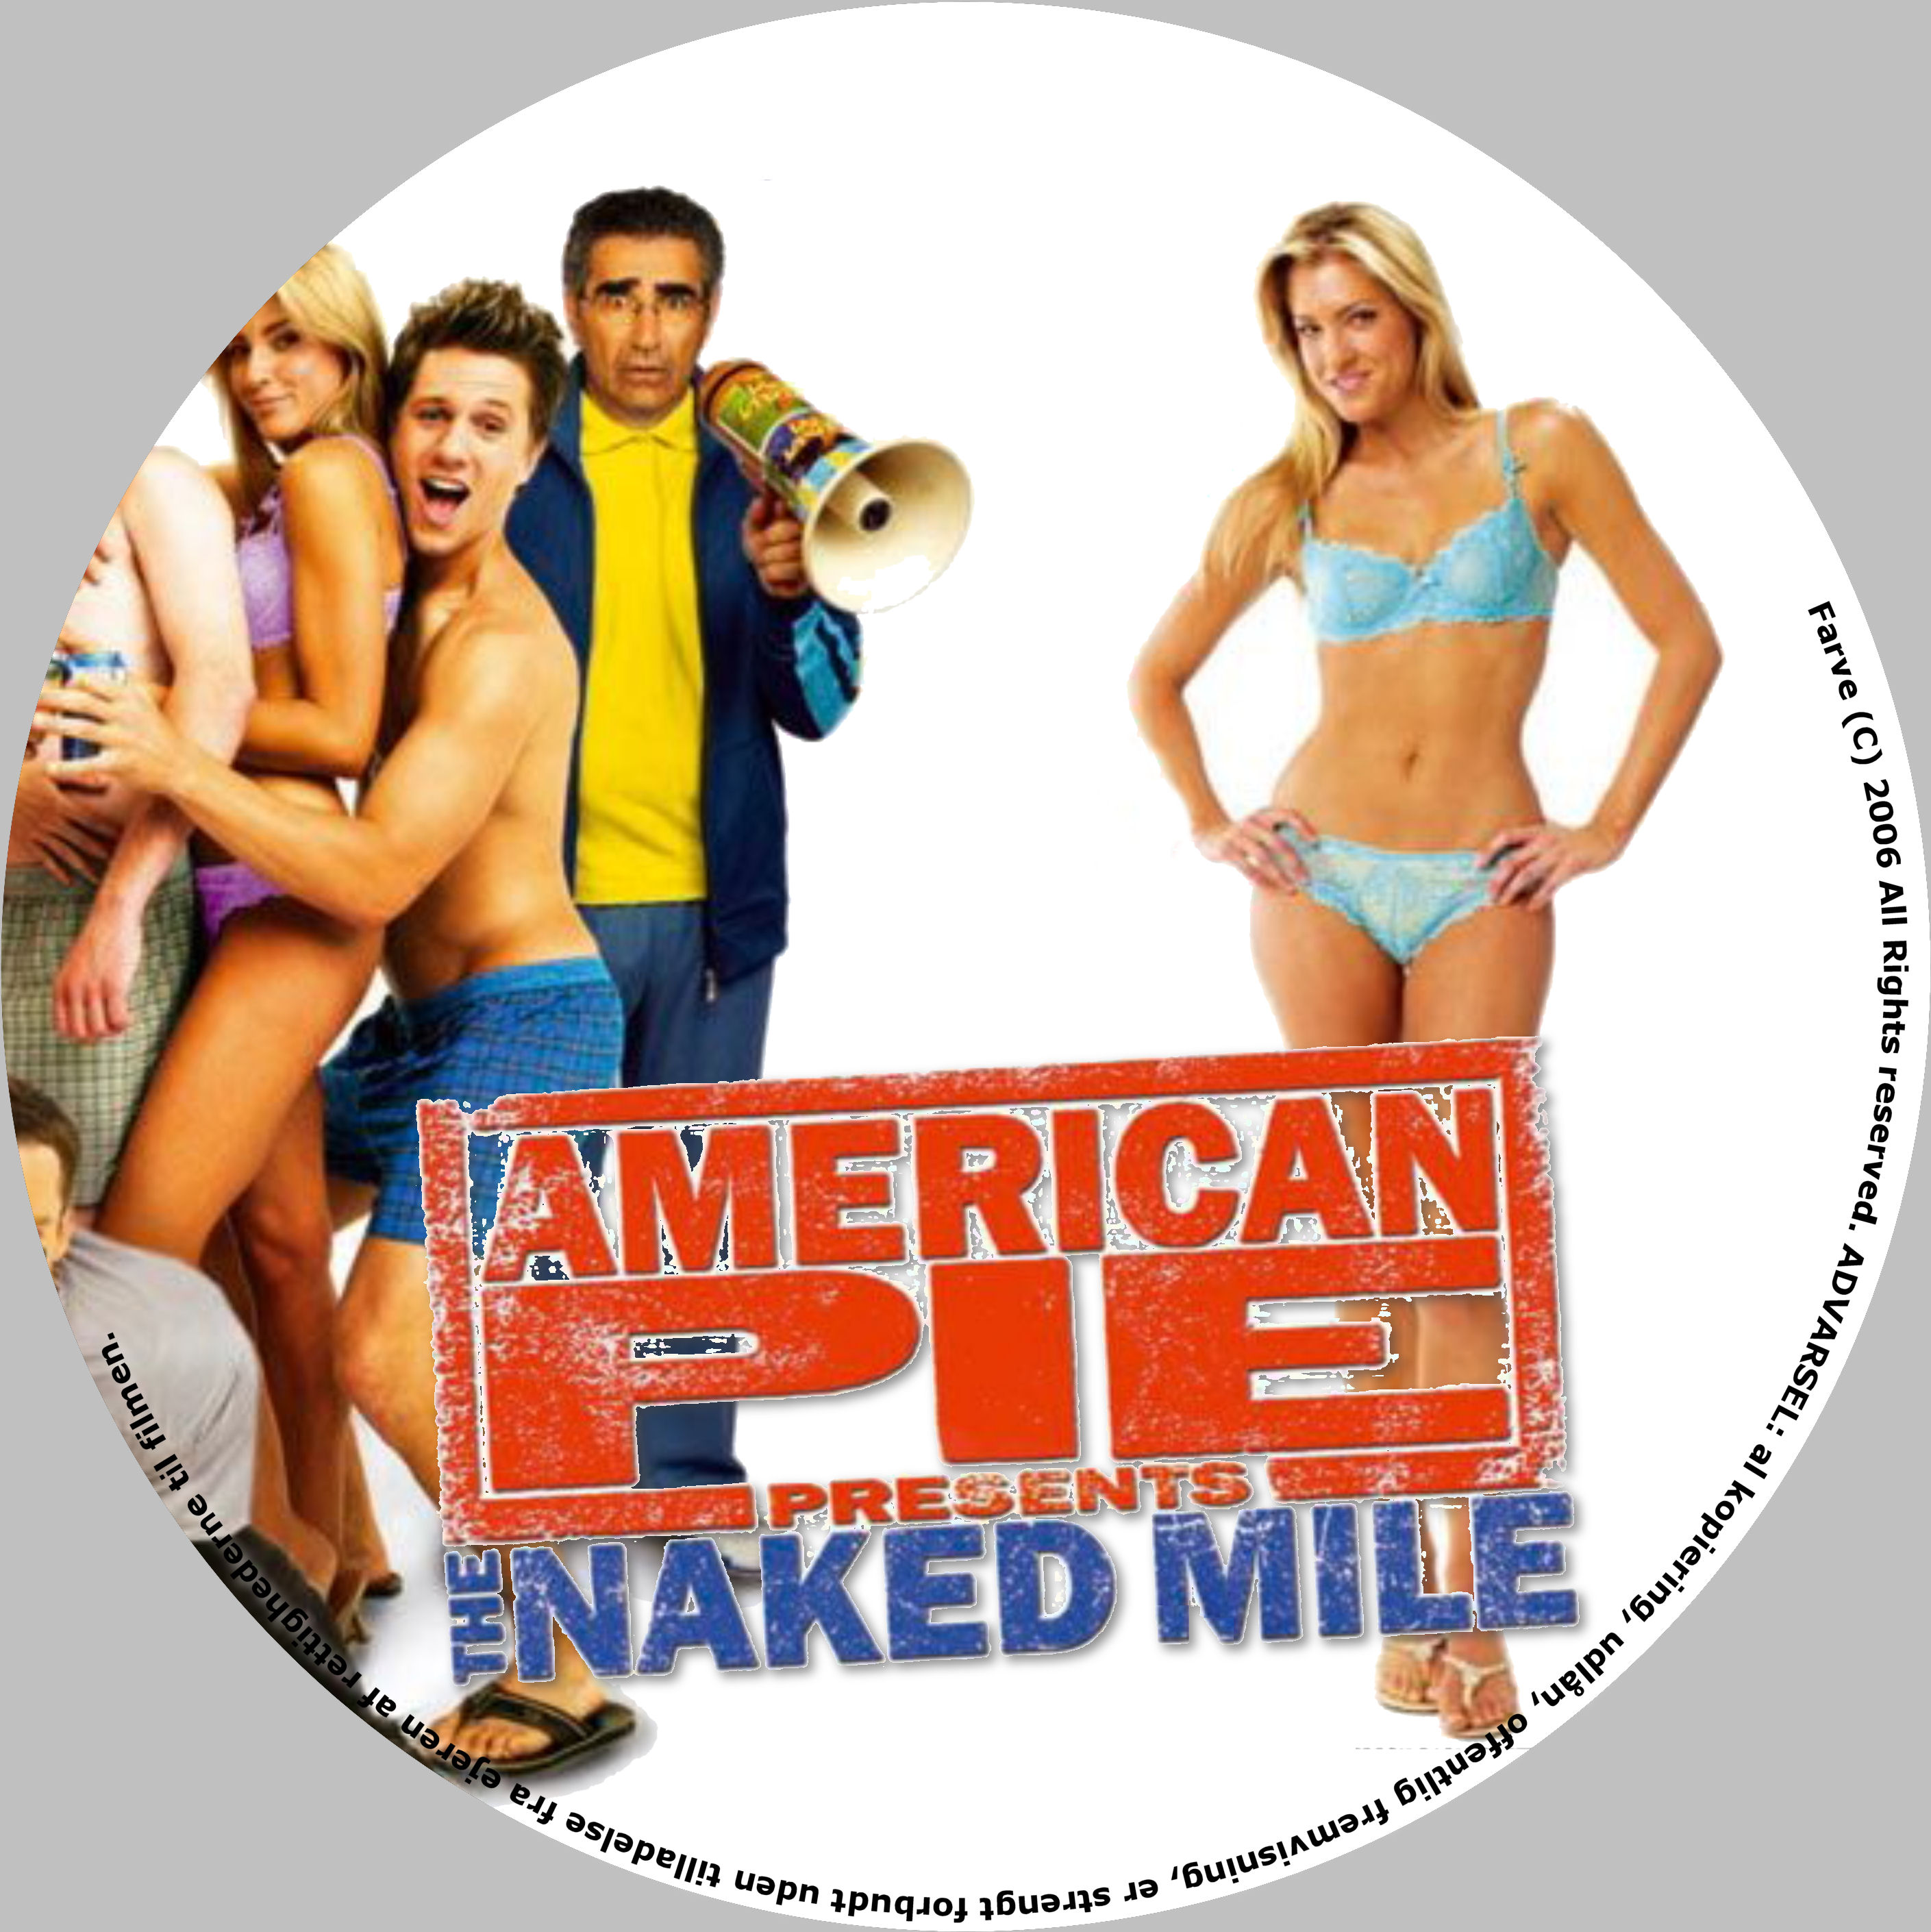 american-pie-the-naked-mile-wikipedia